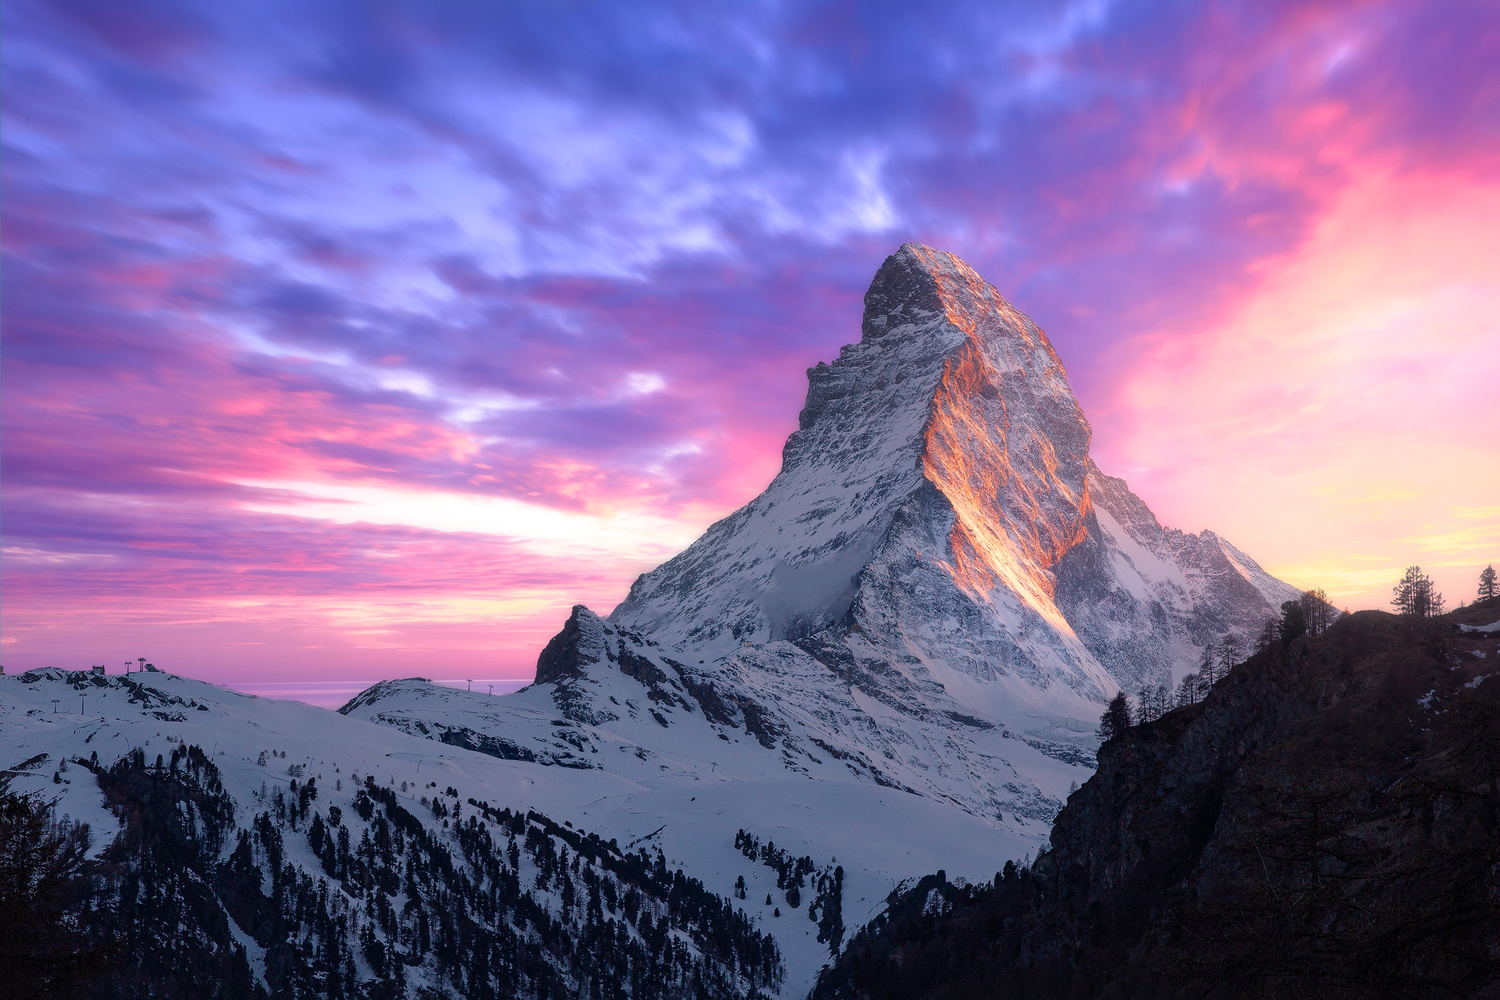 Matterhorn Sunset by Christian Möhrle